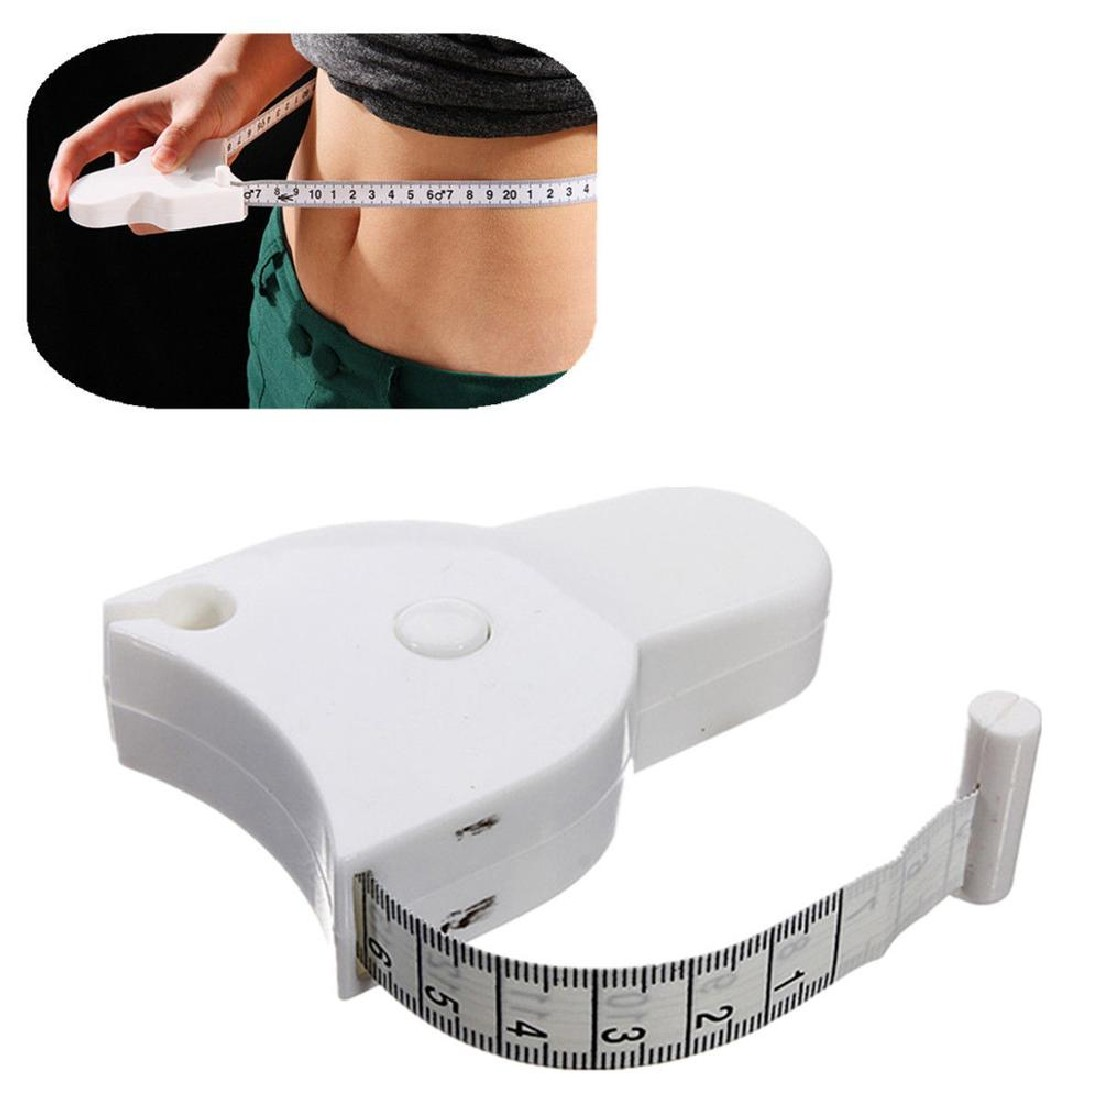 1pcs 150cm Fitness Accurate Caliper Measuring Tape Body Fat font b Weight b font font b